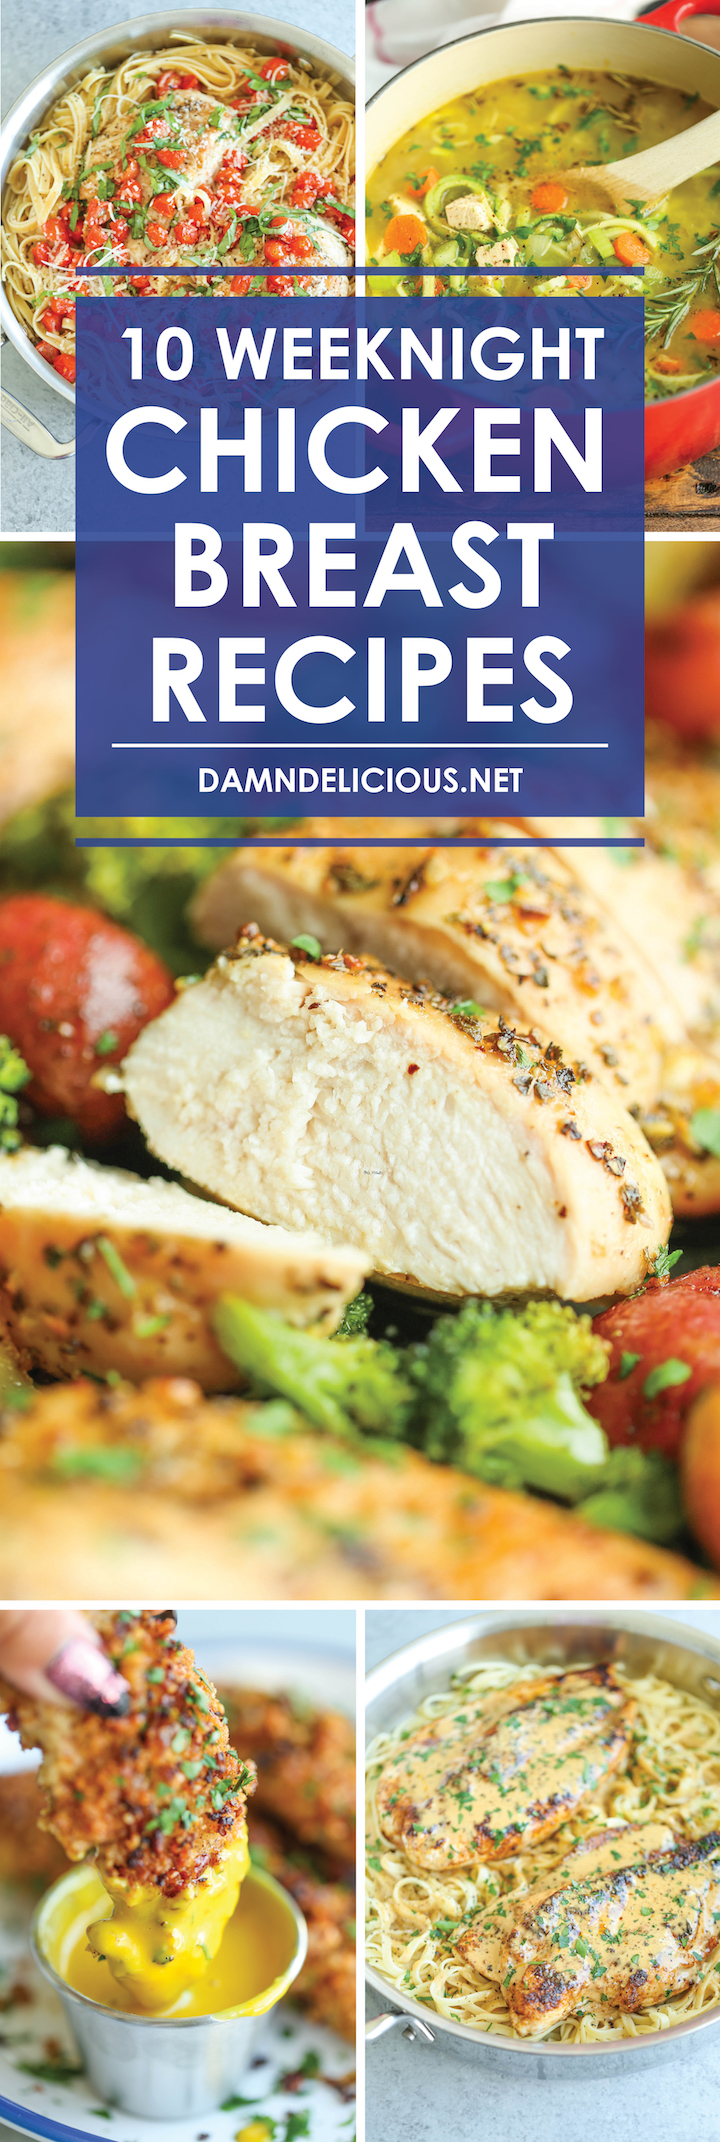 10 Weeknight Chicken Breast Recipes Damn Delicious